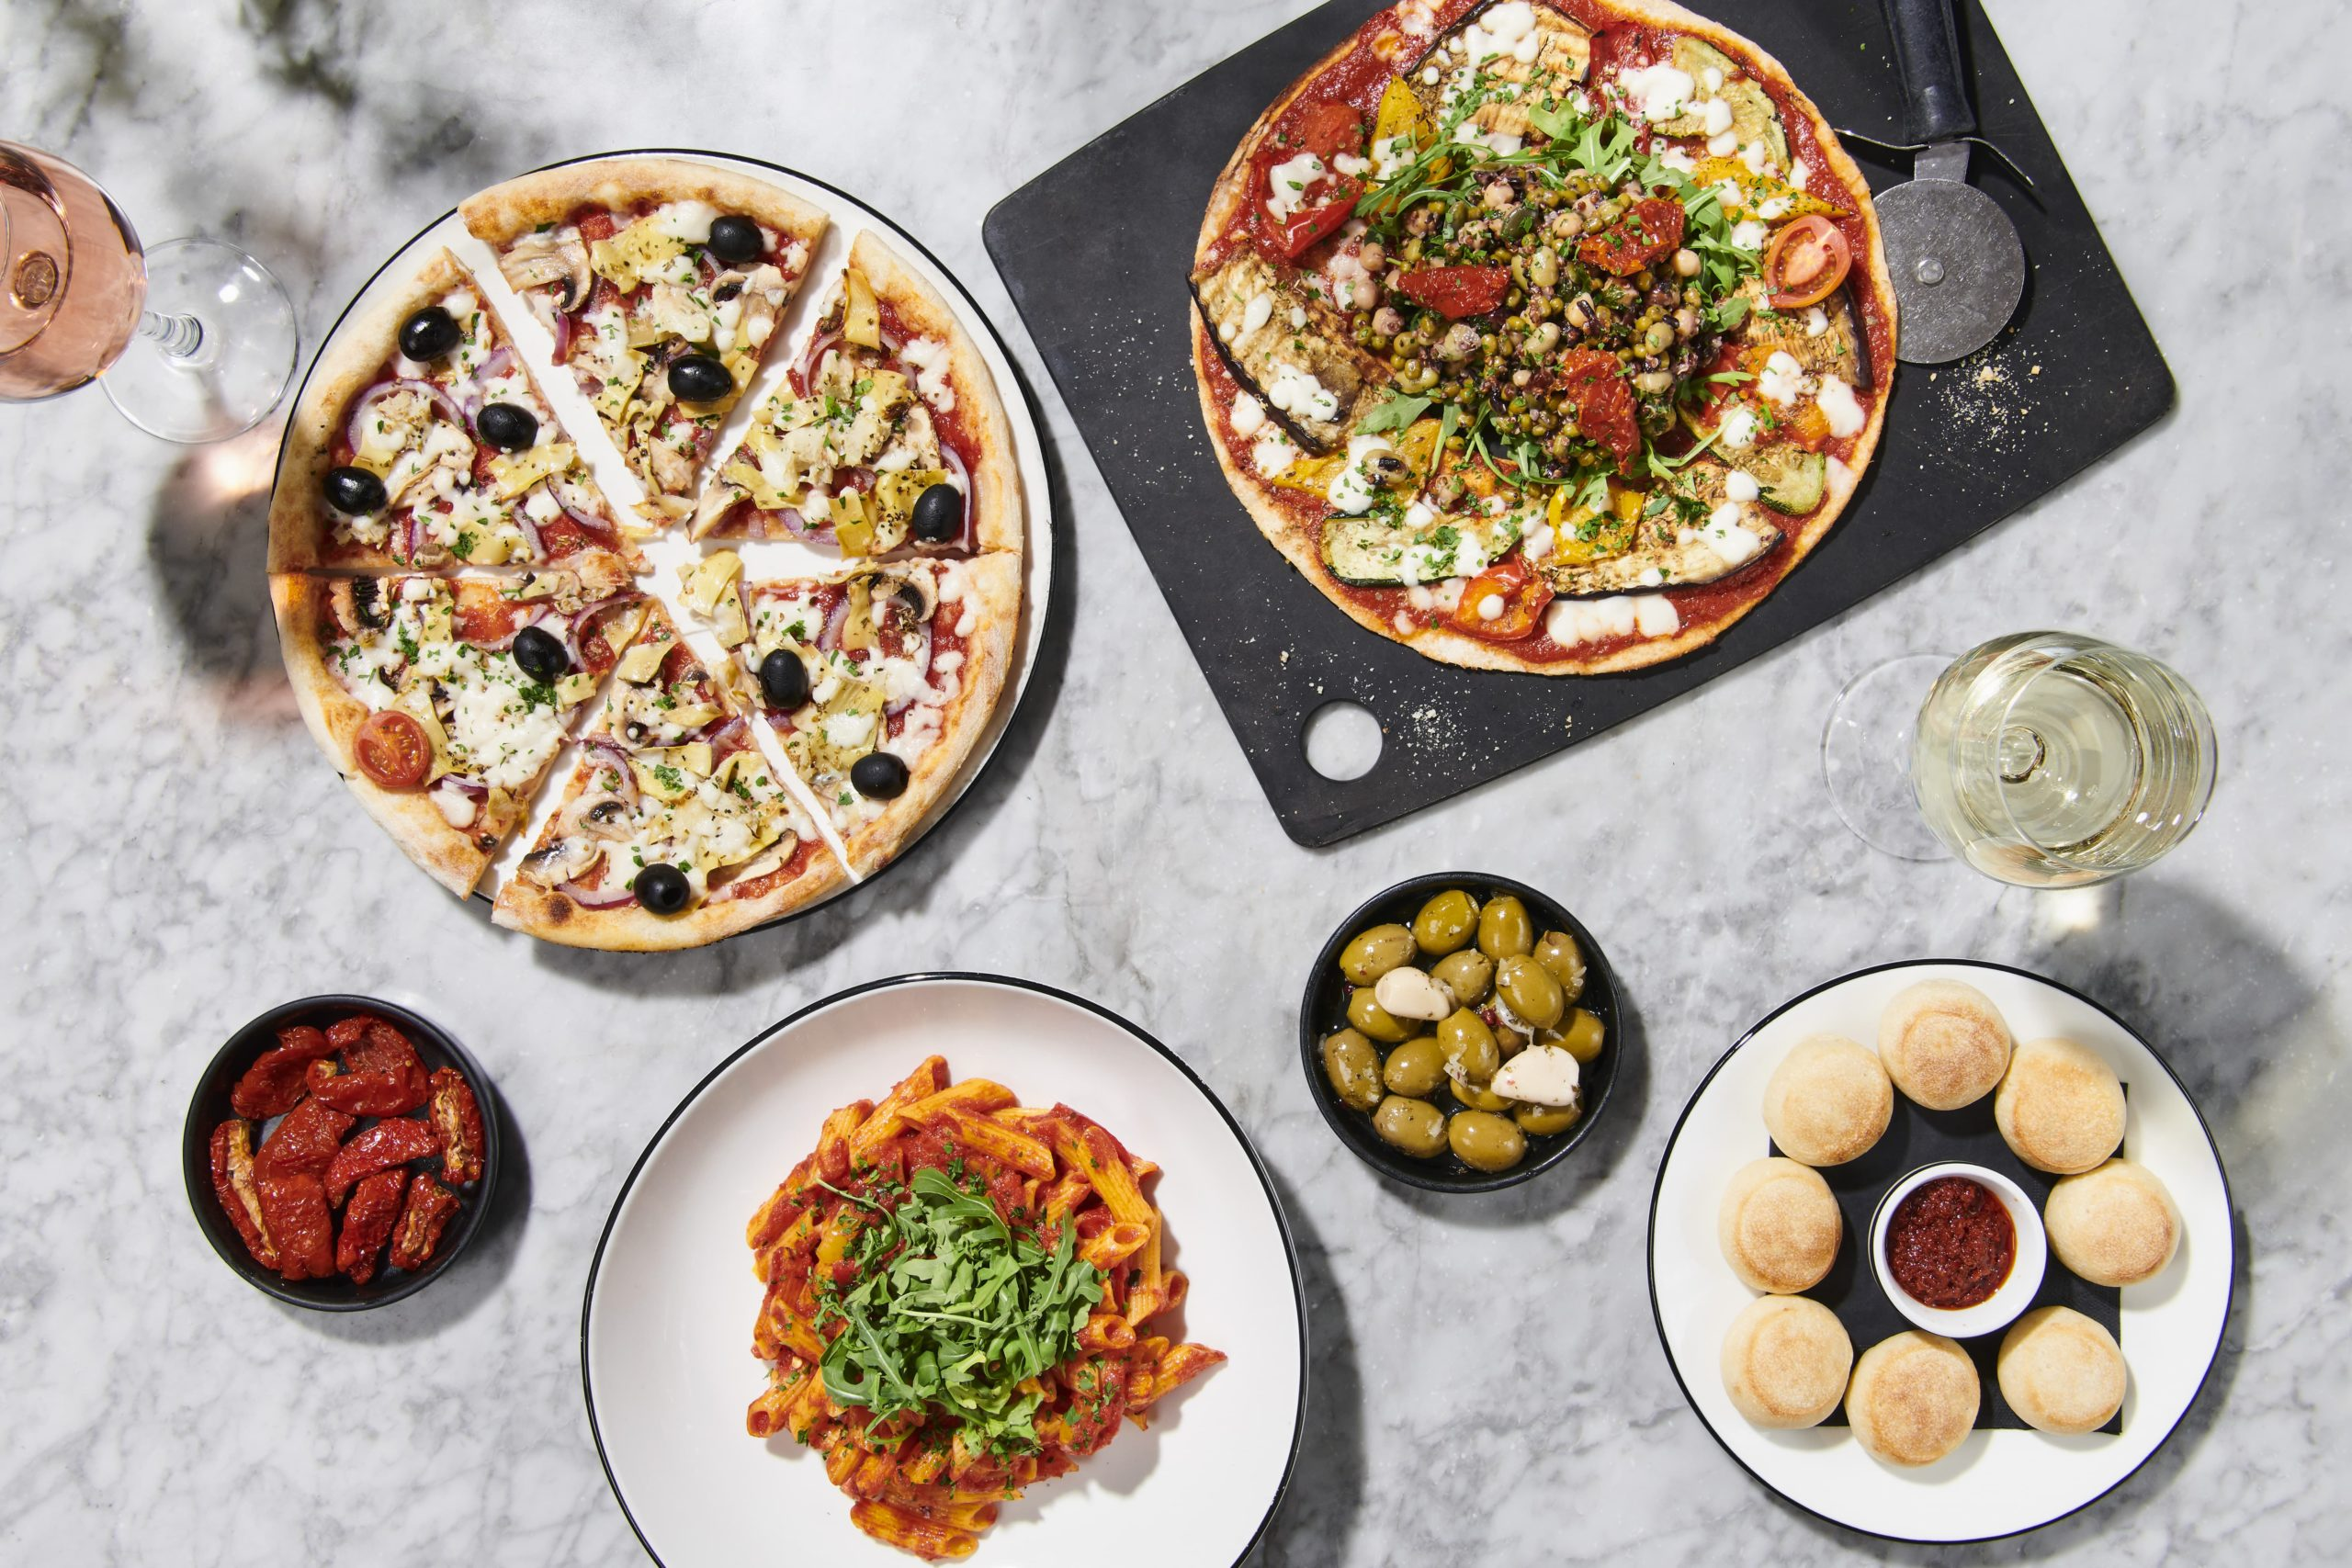 Pizza Express vegan options